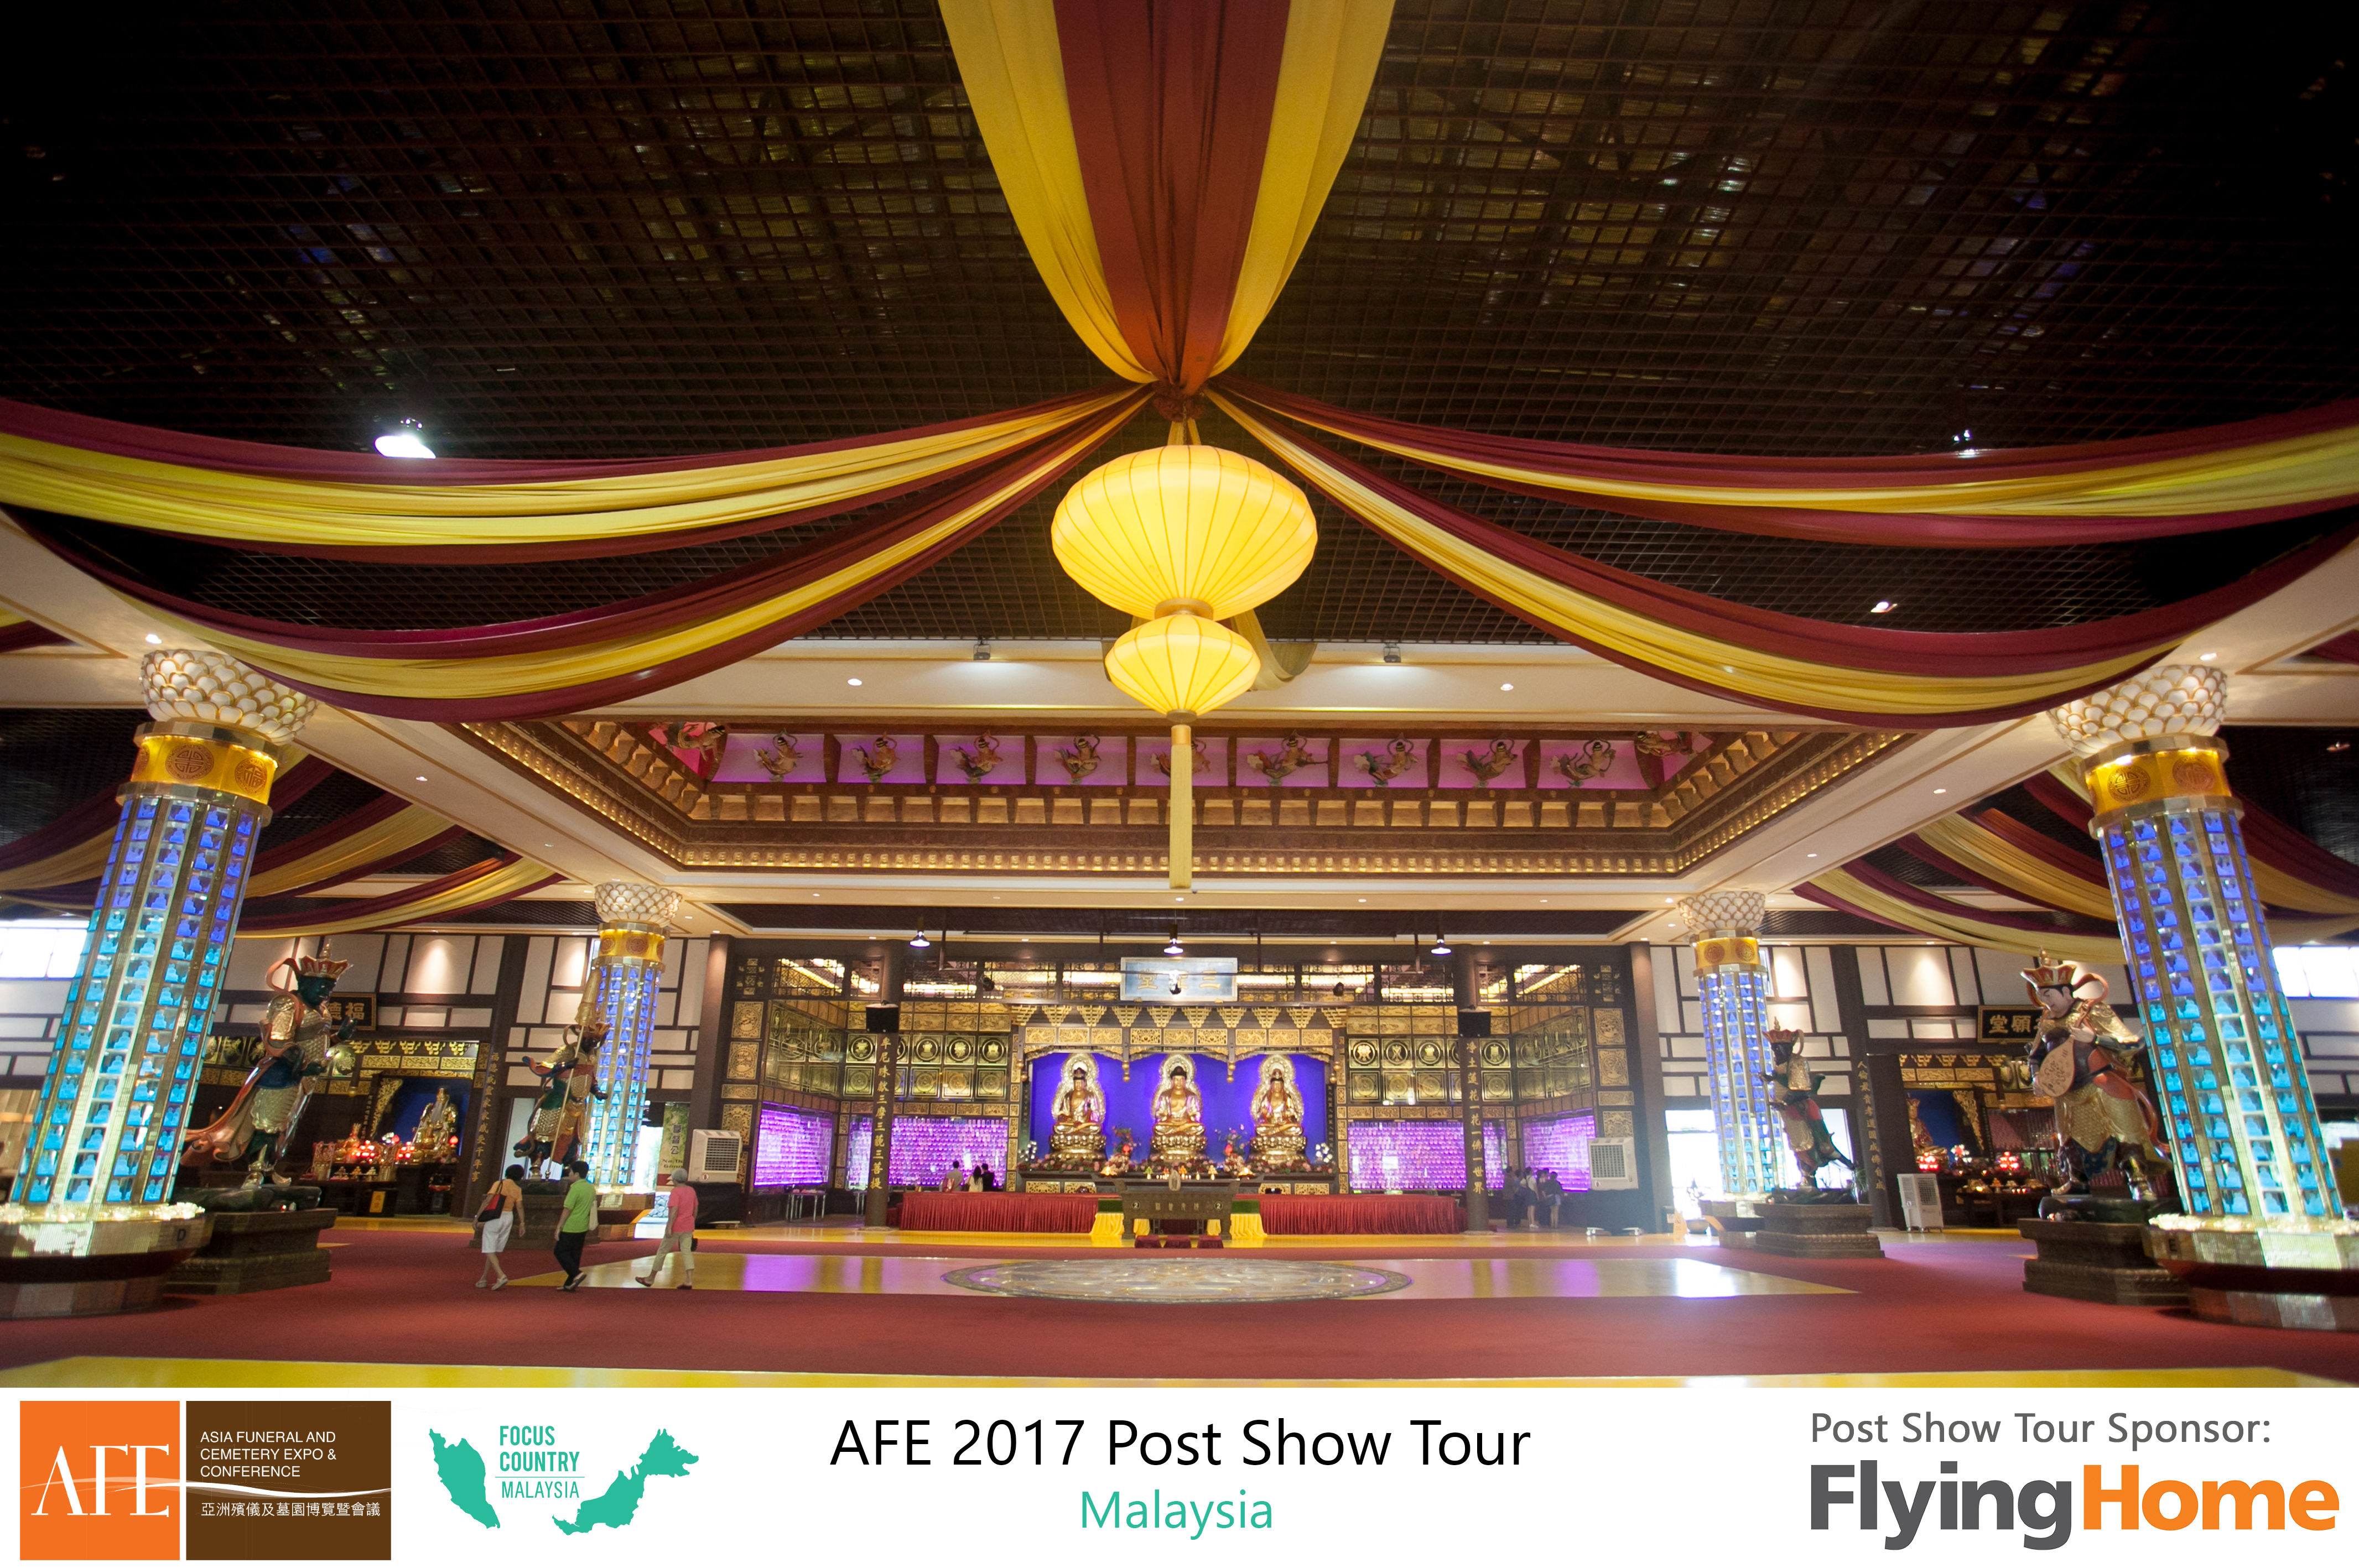 AFE Post Show Tour 2017 Day 2 - 45